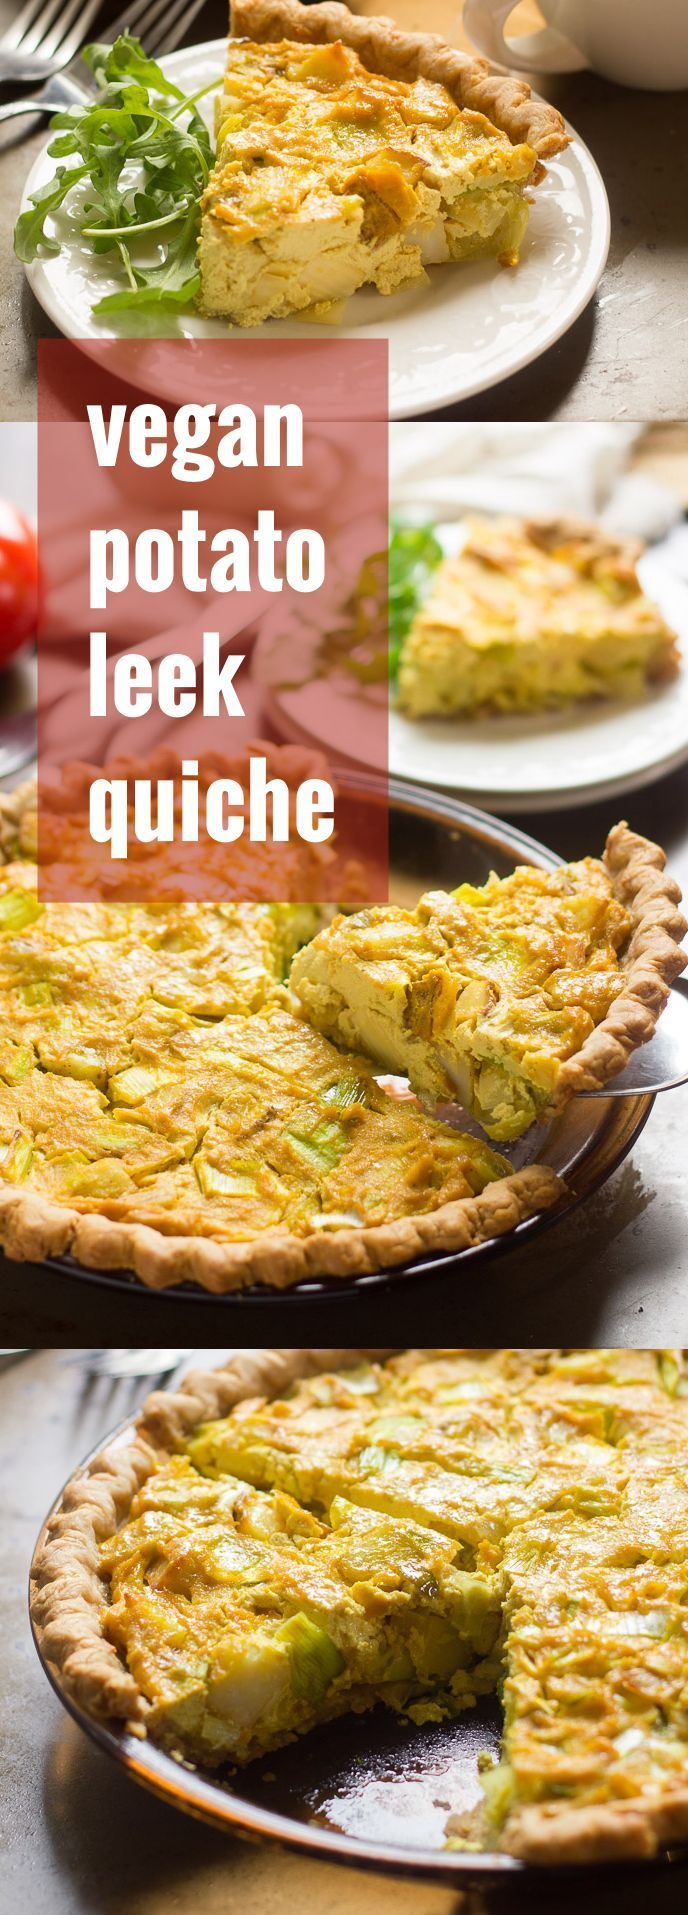 This vegan quiche is made with a savory mix of tofu, crispy potatoes and leeks, all baked up to tender perfection inside a flaky crust.